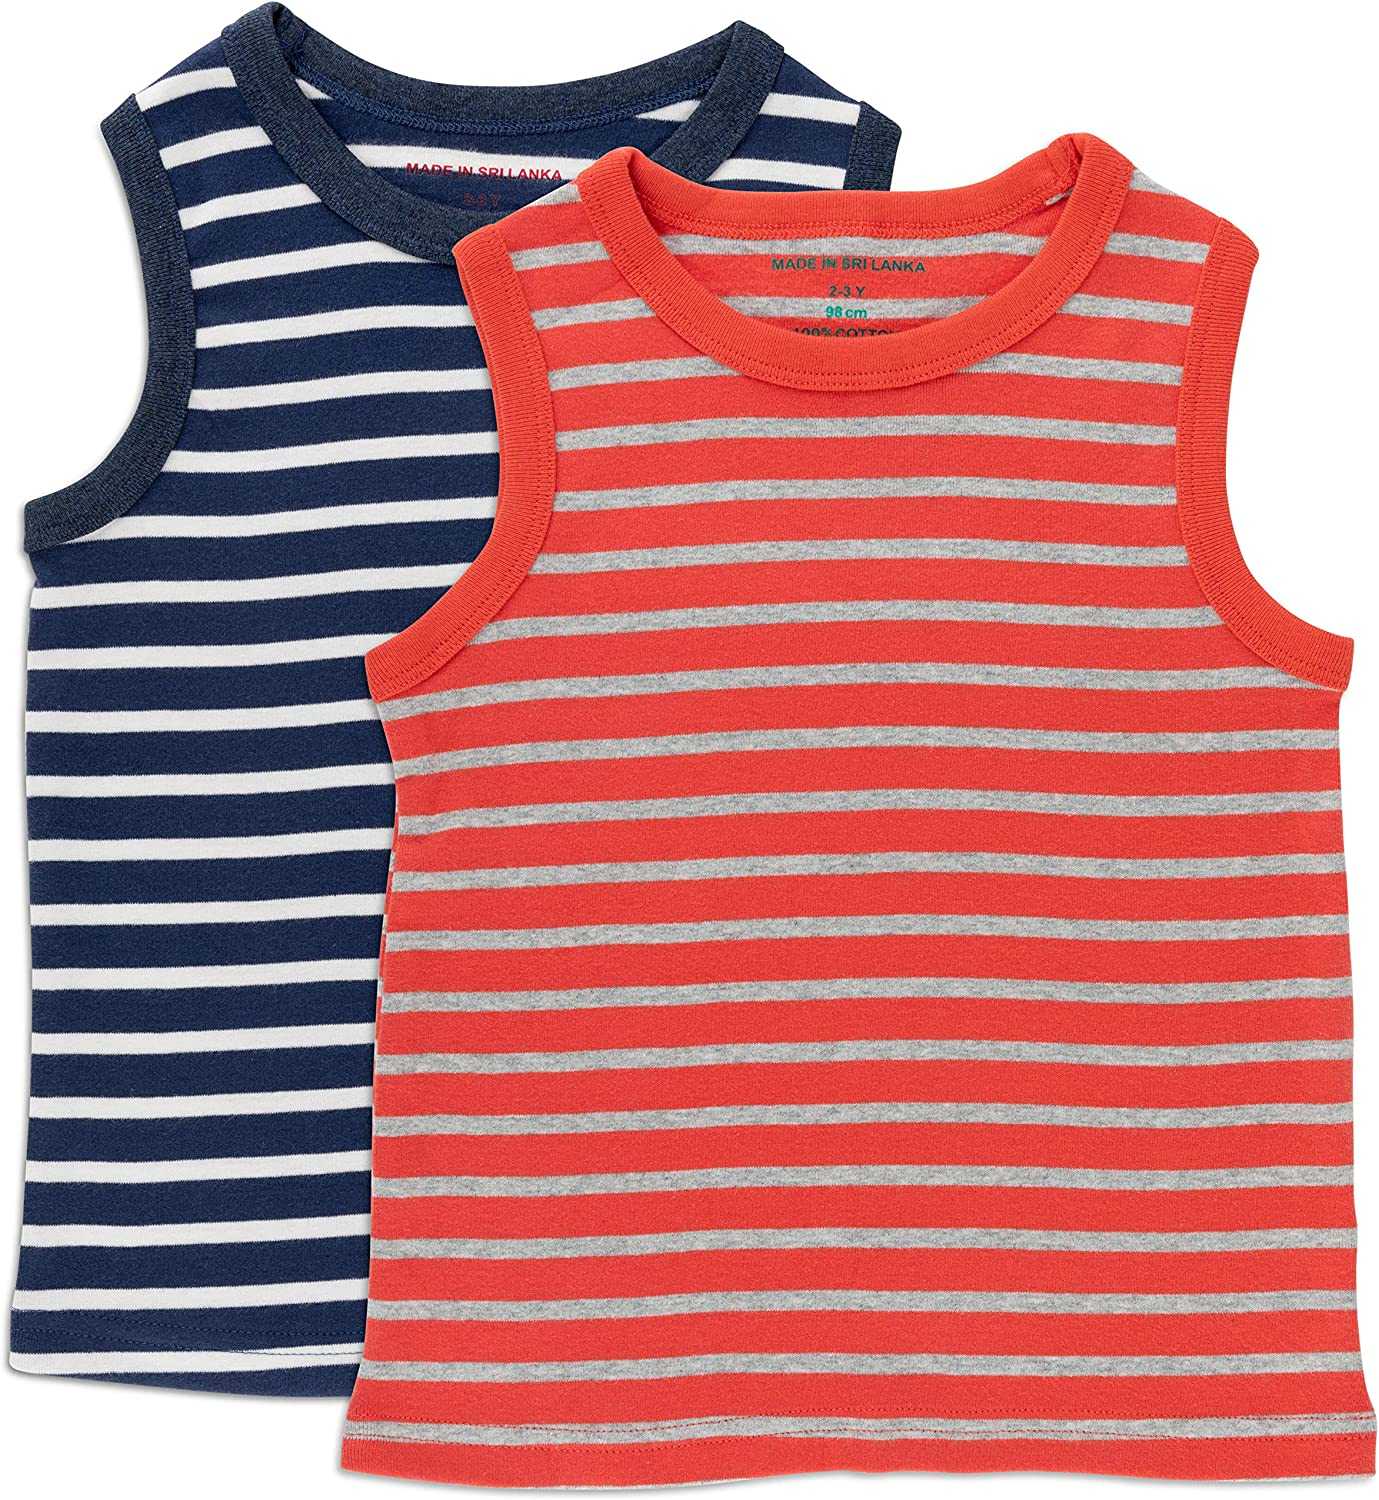 Navy and White Striped Print 6 /& 7 Years 3 5 Sizes 2 2 Pack Boys Sleeveless Shirt Red and Gray Striped Print 4 Jos White Boys Tank Top